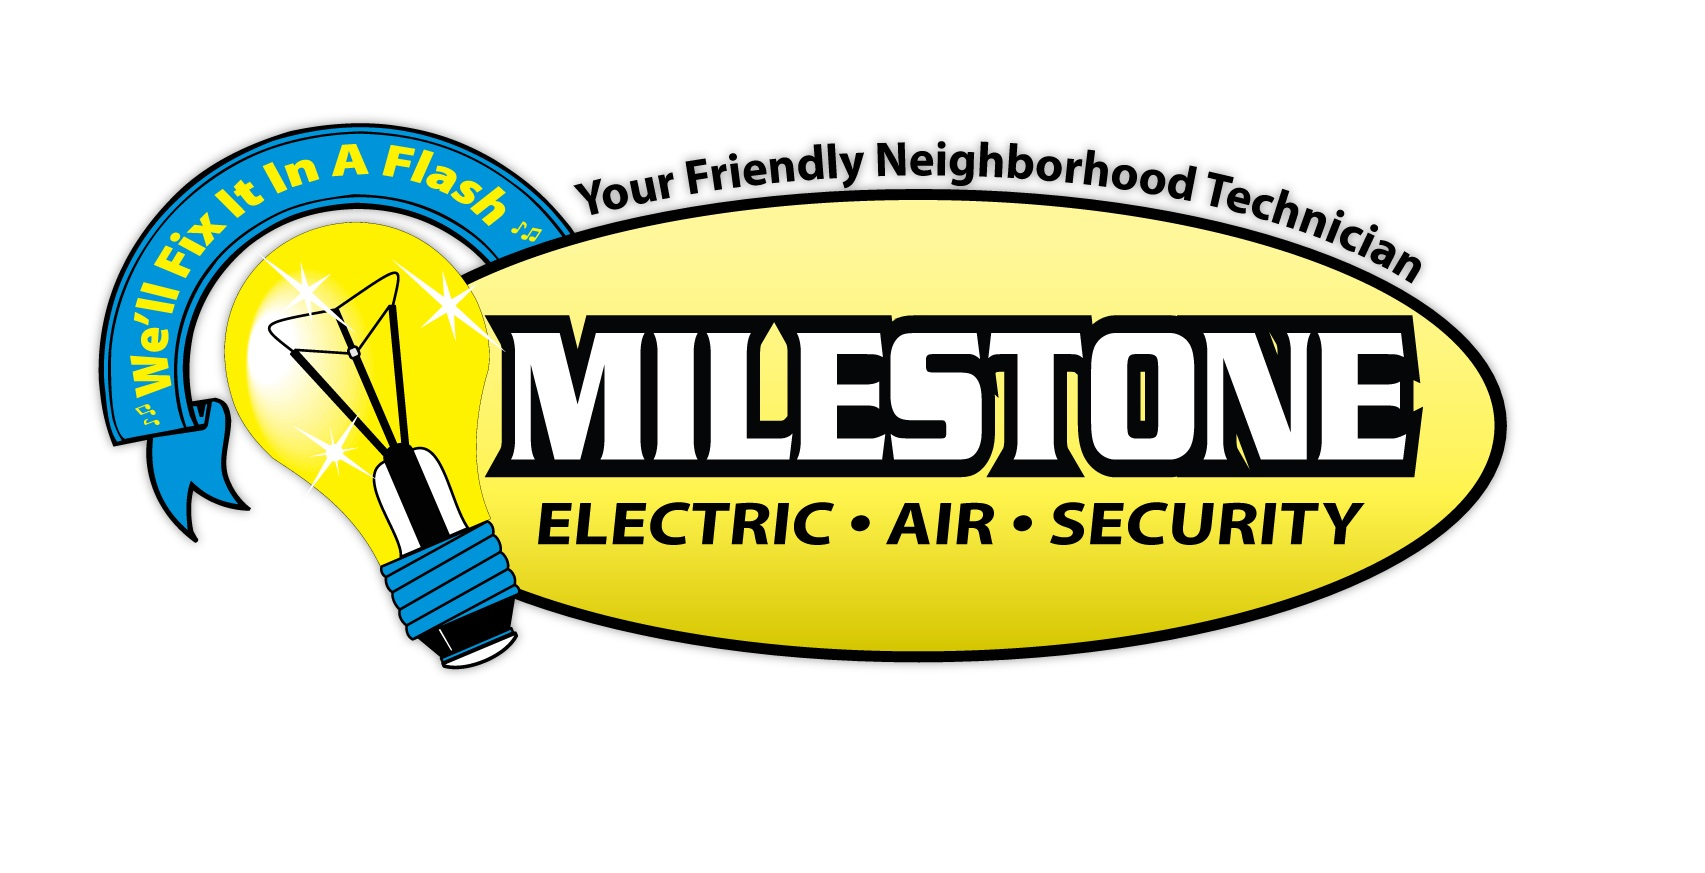 Milestone Electric.jpg